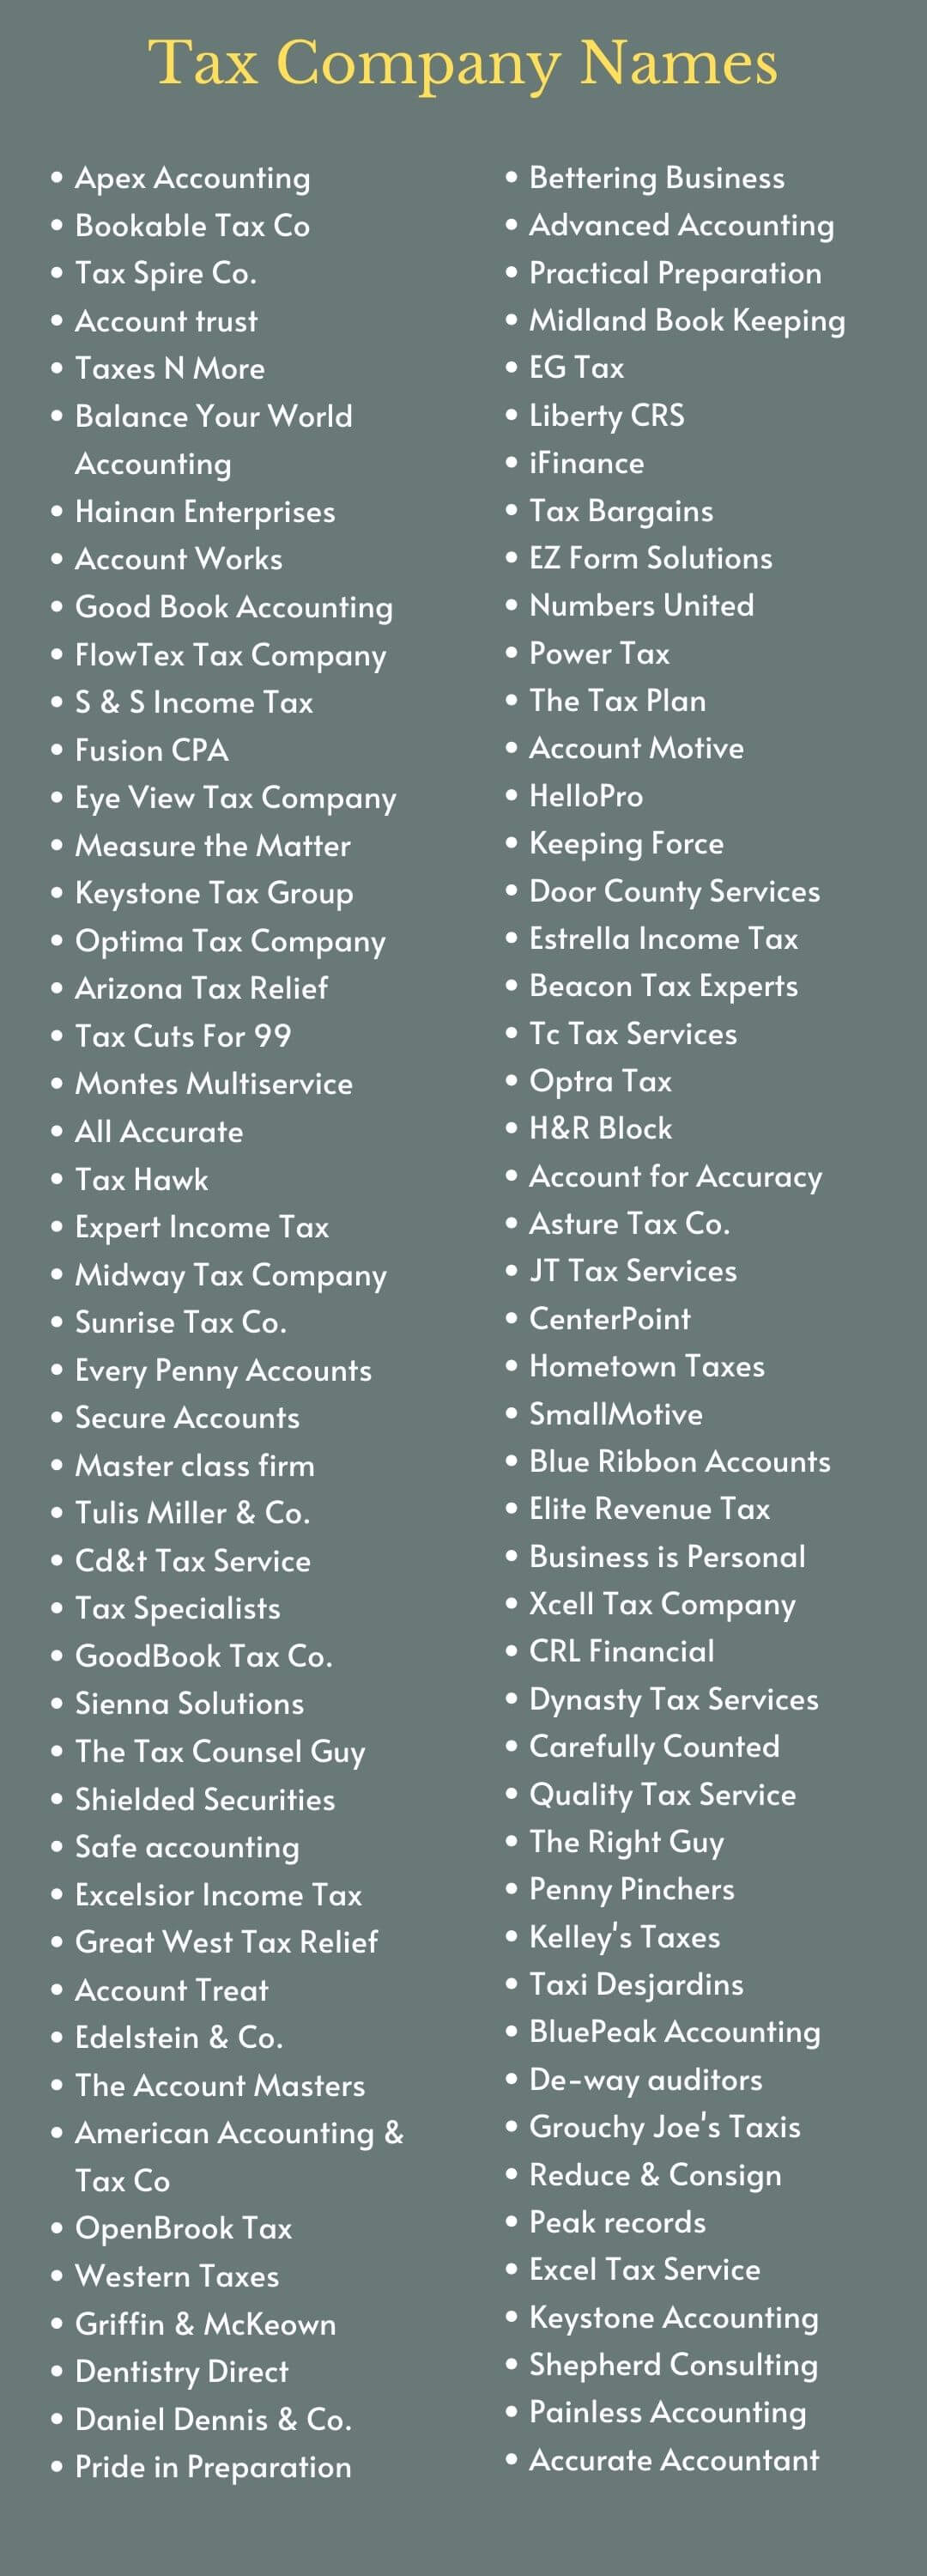 Tax Company Names: infographic